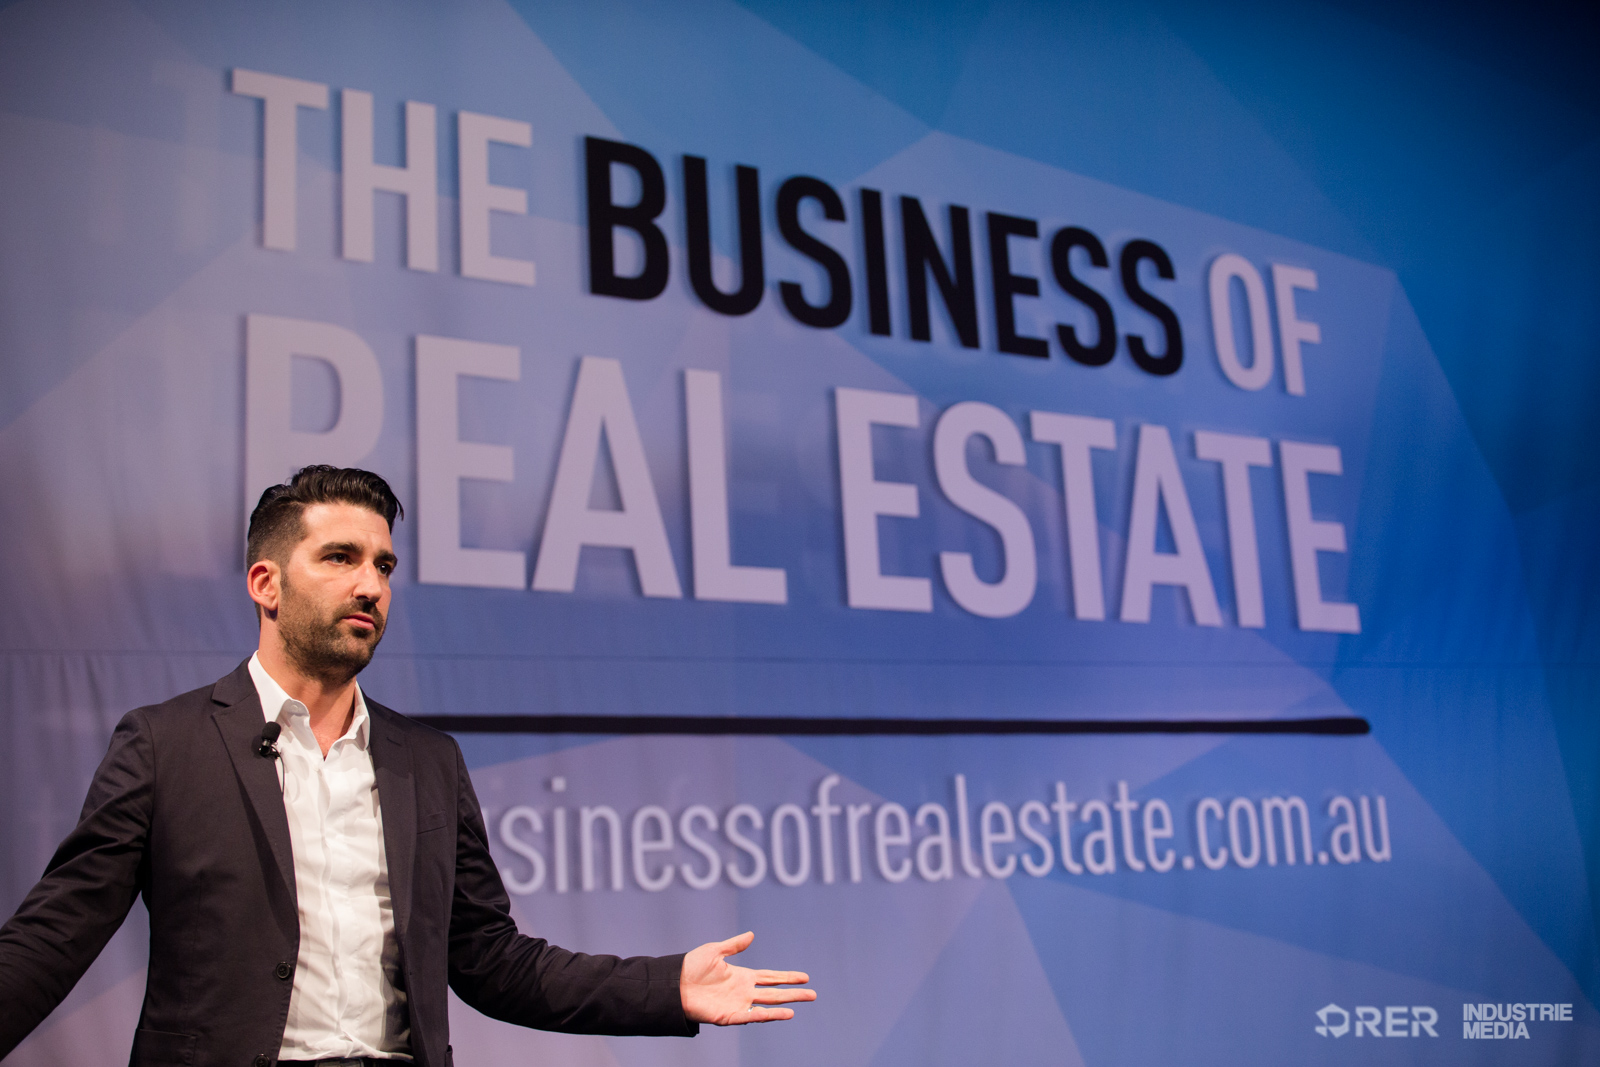 https://www.thebusinessofrealestate.com.au/wp-content/uploads/2016/09/RER_BUSINESS_OF_REAL_ESTATE_DAY_2-44.jpg